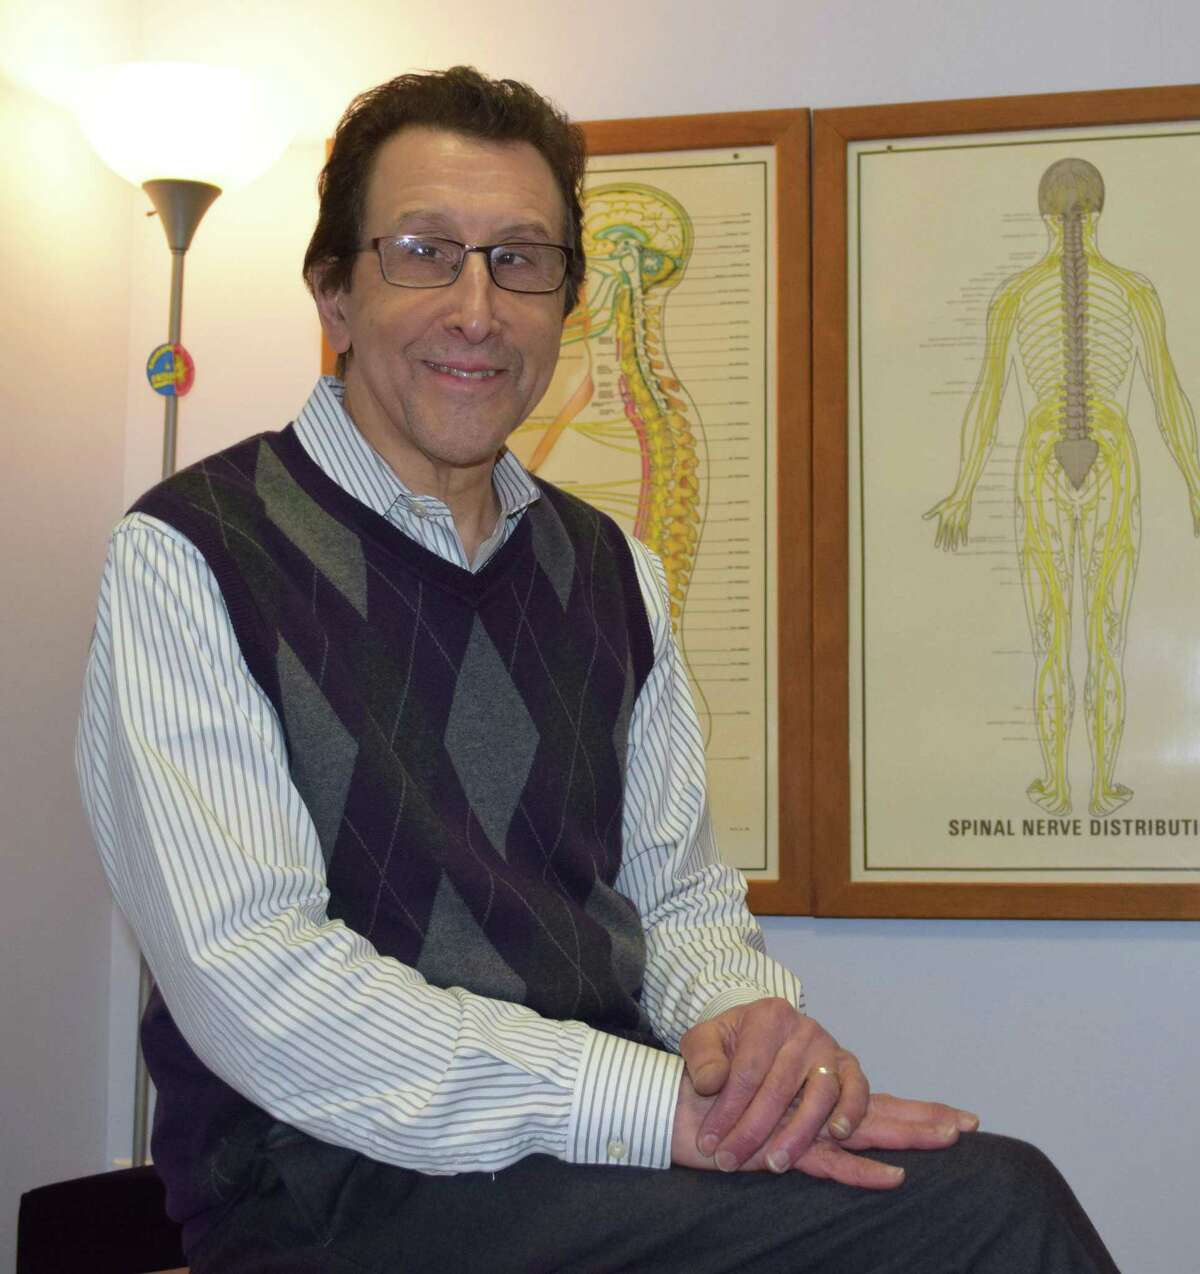 Dr. Arthur Klein operates Family First Chiropractic and Wellness Center in New Milford. The practice is celebrating its 25th anniversary this year.